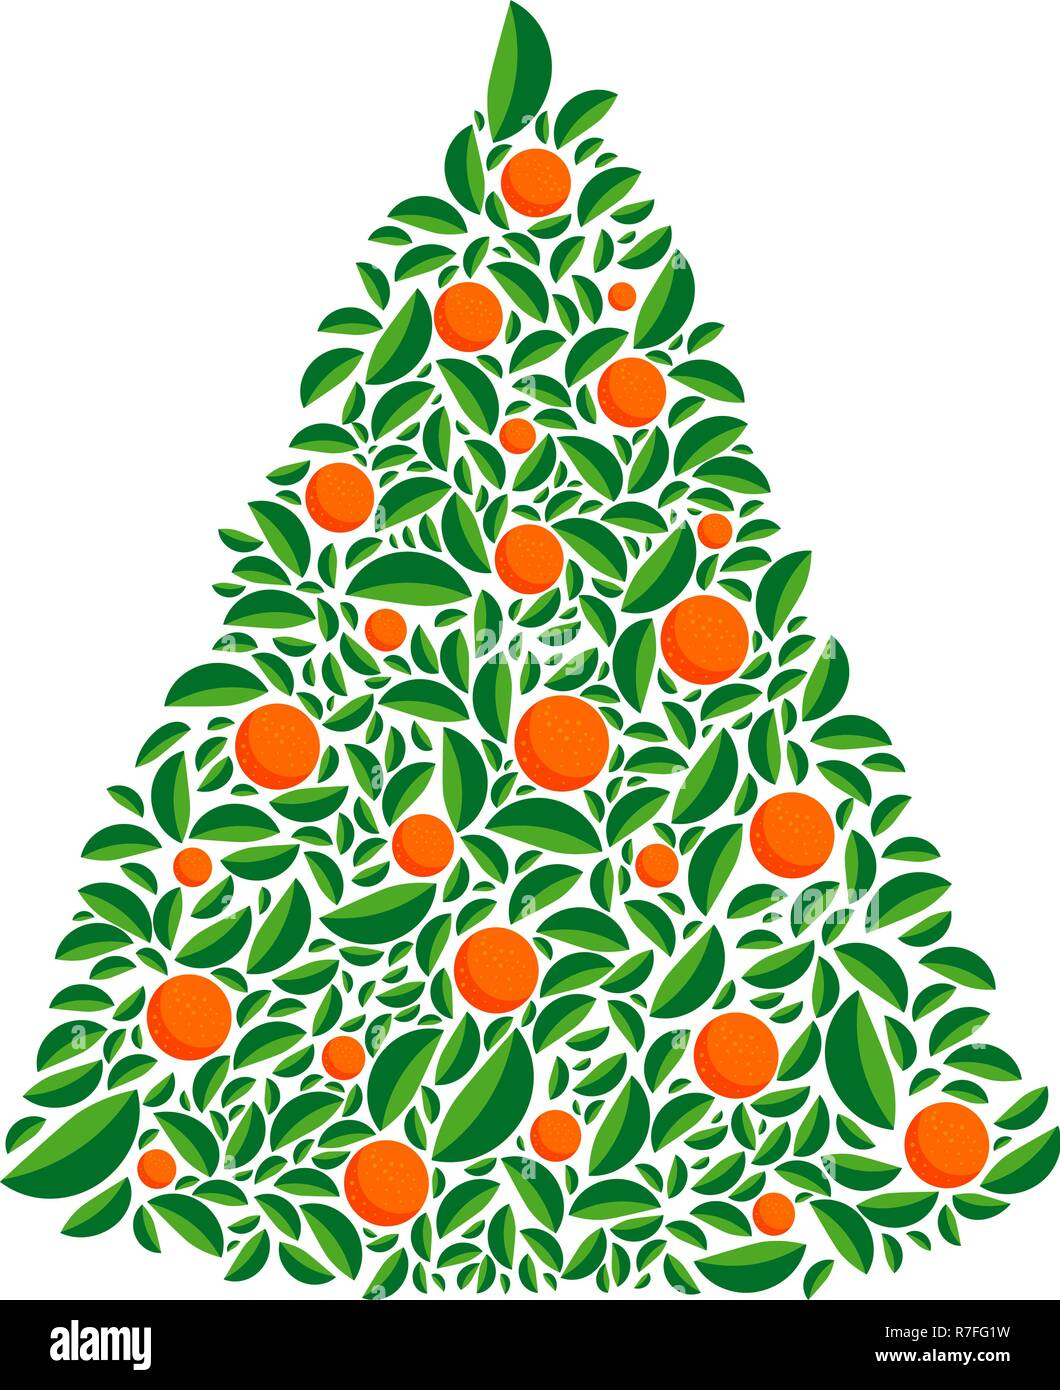 Vector christmas green tree with orange balls. Isolated vector illustration.Christmas and New year. Cartoon greeting card, festive poster or party inv - Stock Vector